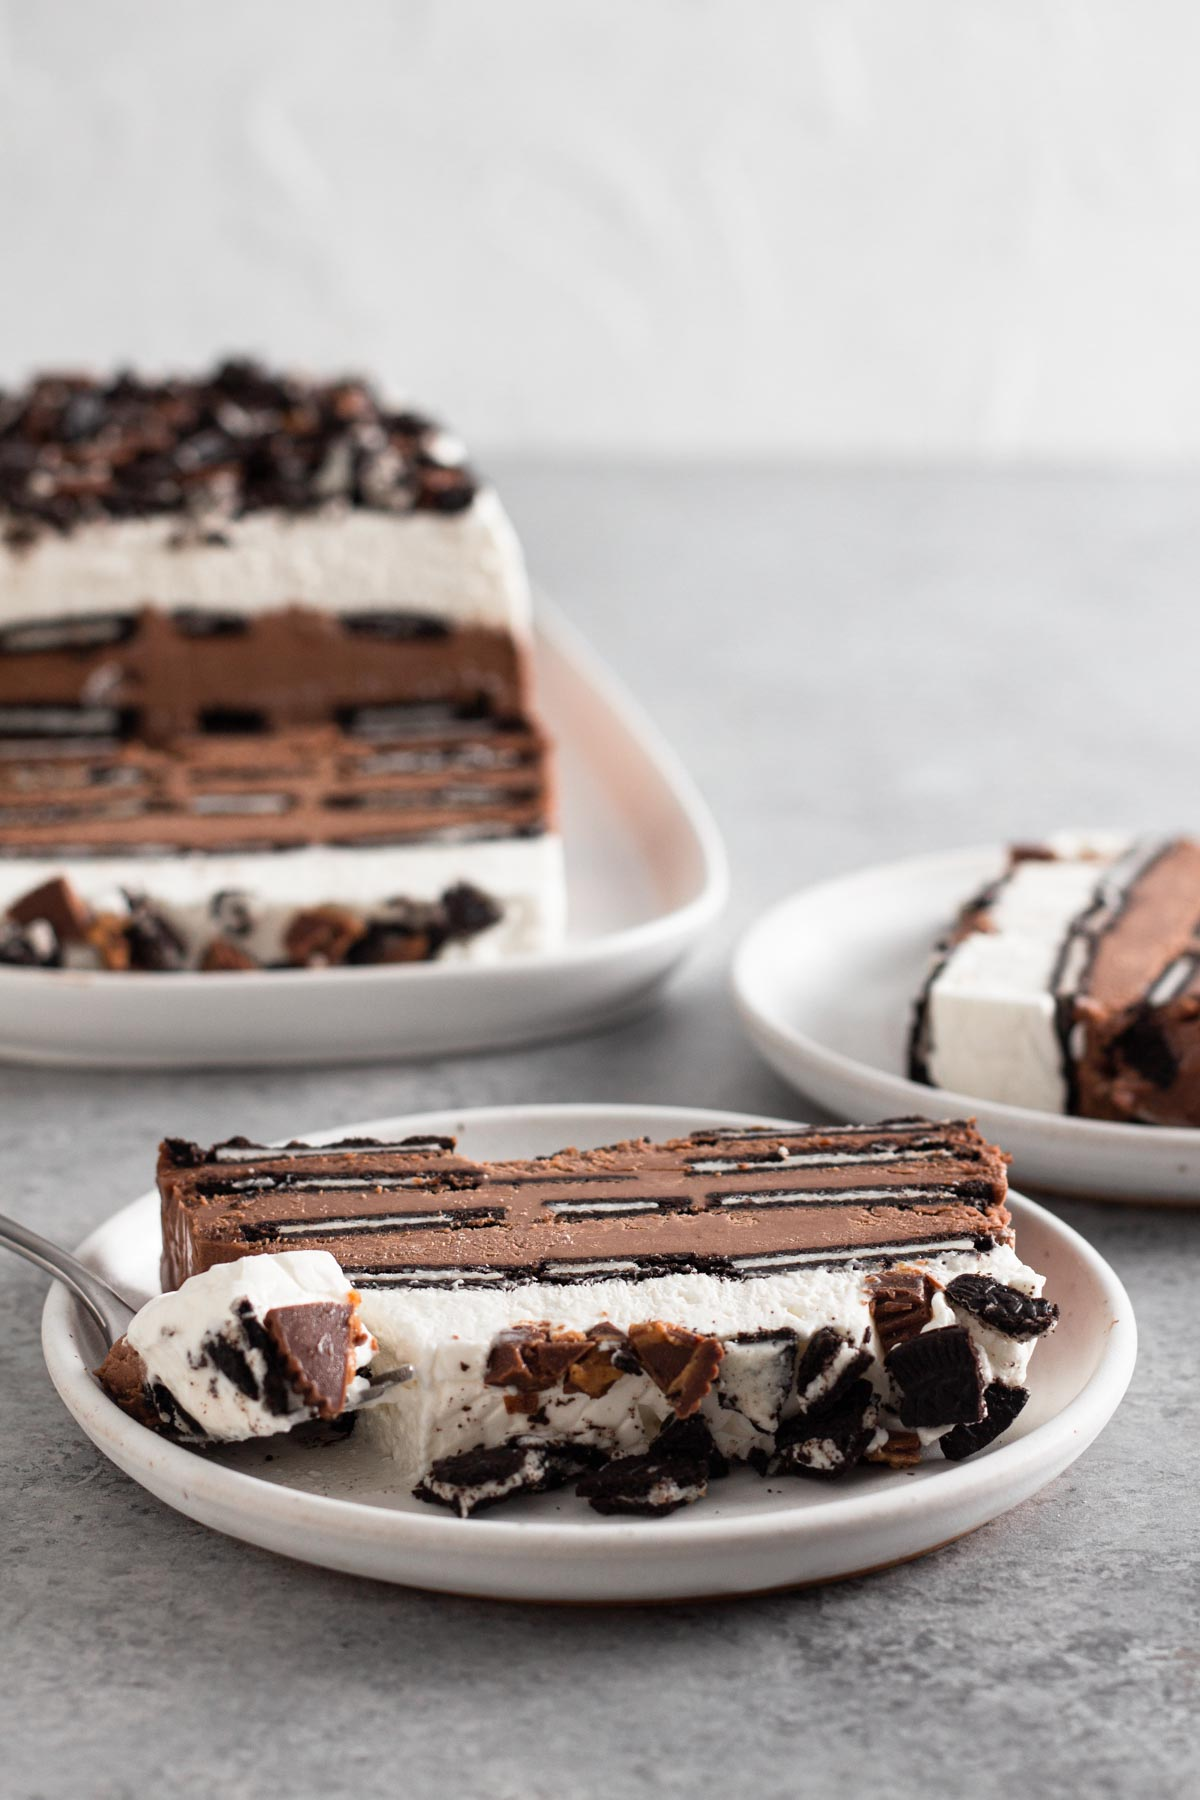 side view of slices of icebox cake on white plates on a gray surface